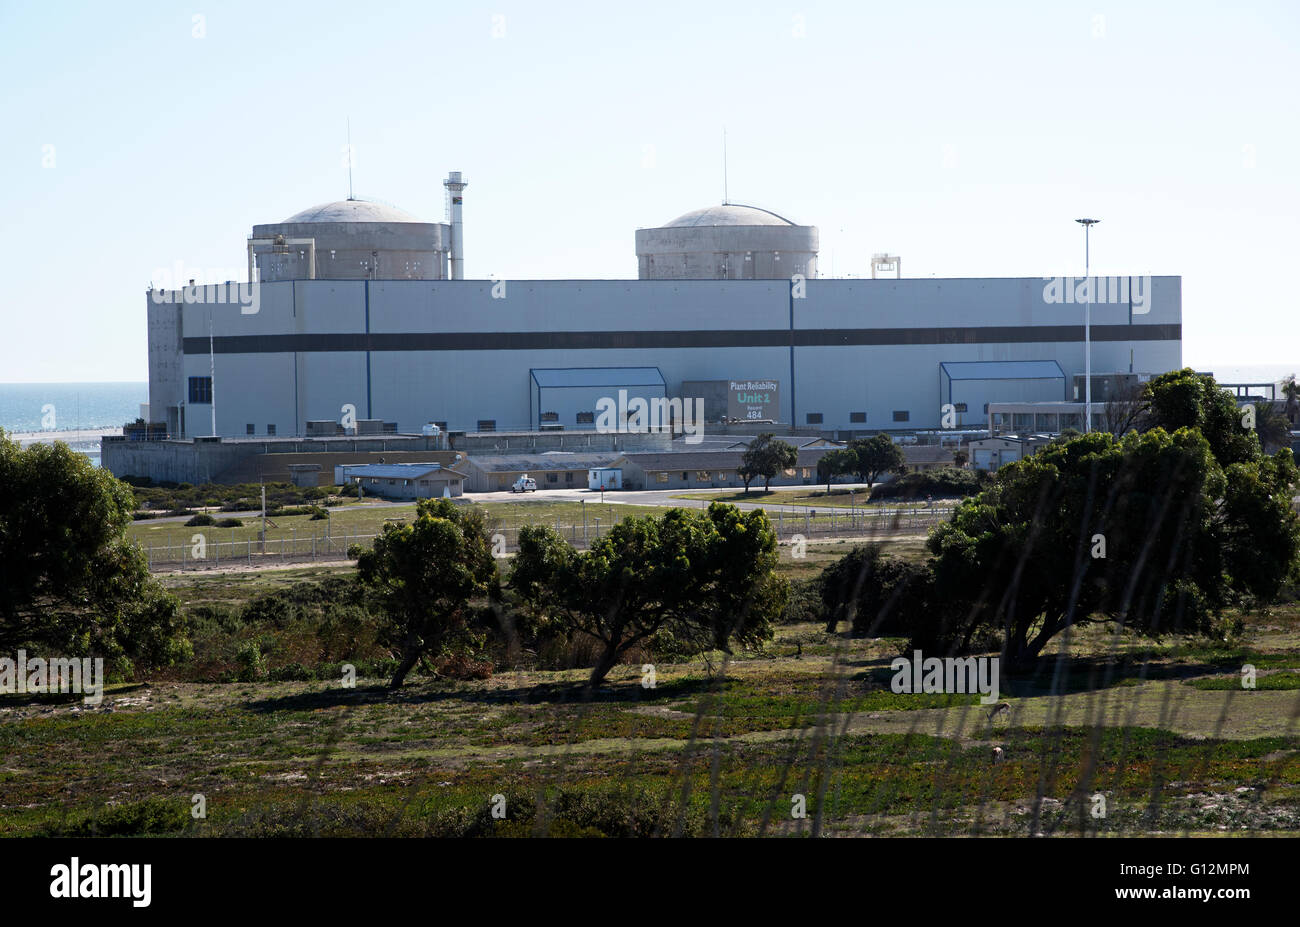 THE KOEBERG NUCLEAR POWER STATION NORTH OF CAPE TOWN SOUTH AFRICA . Koeberg is the only nuclear power station in - Stock Image